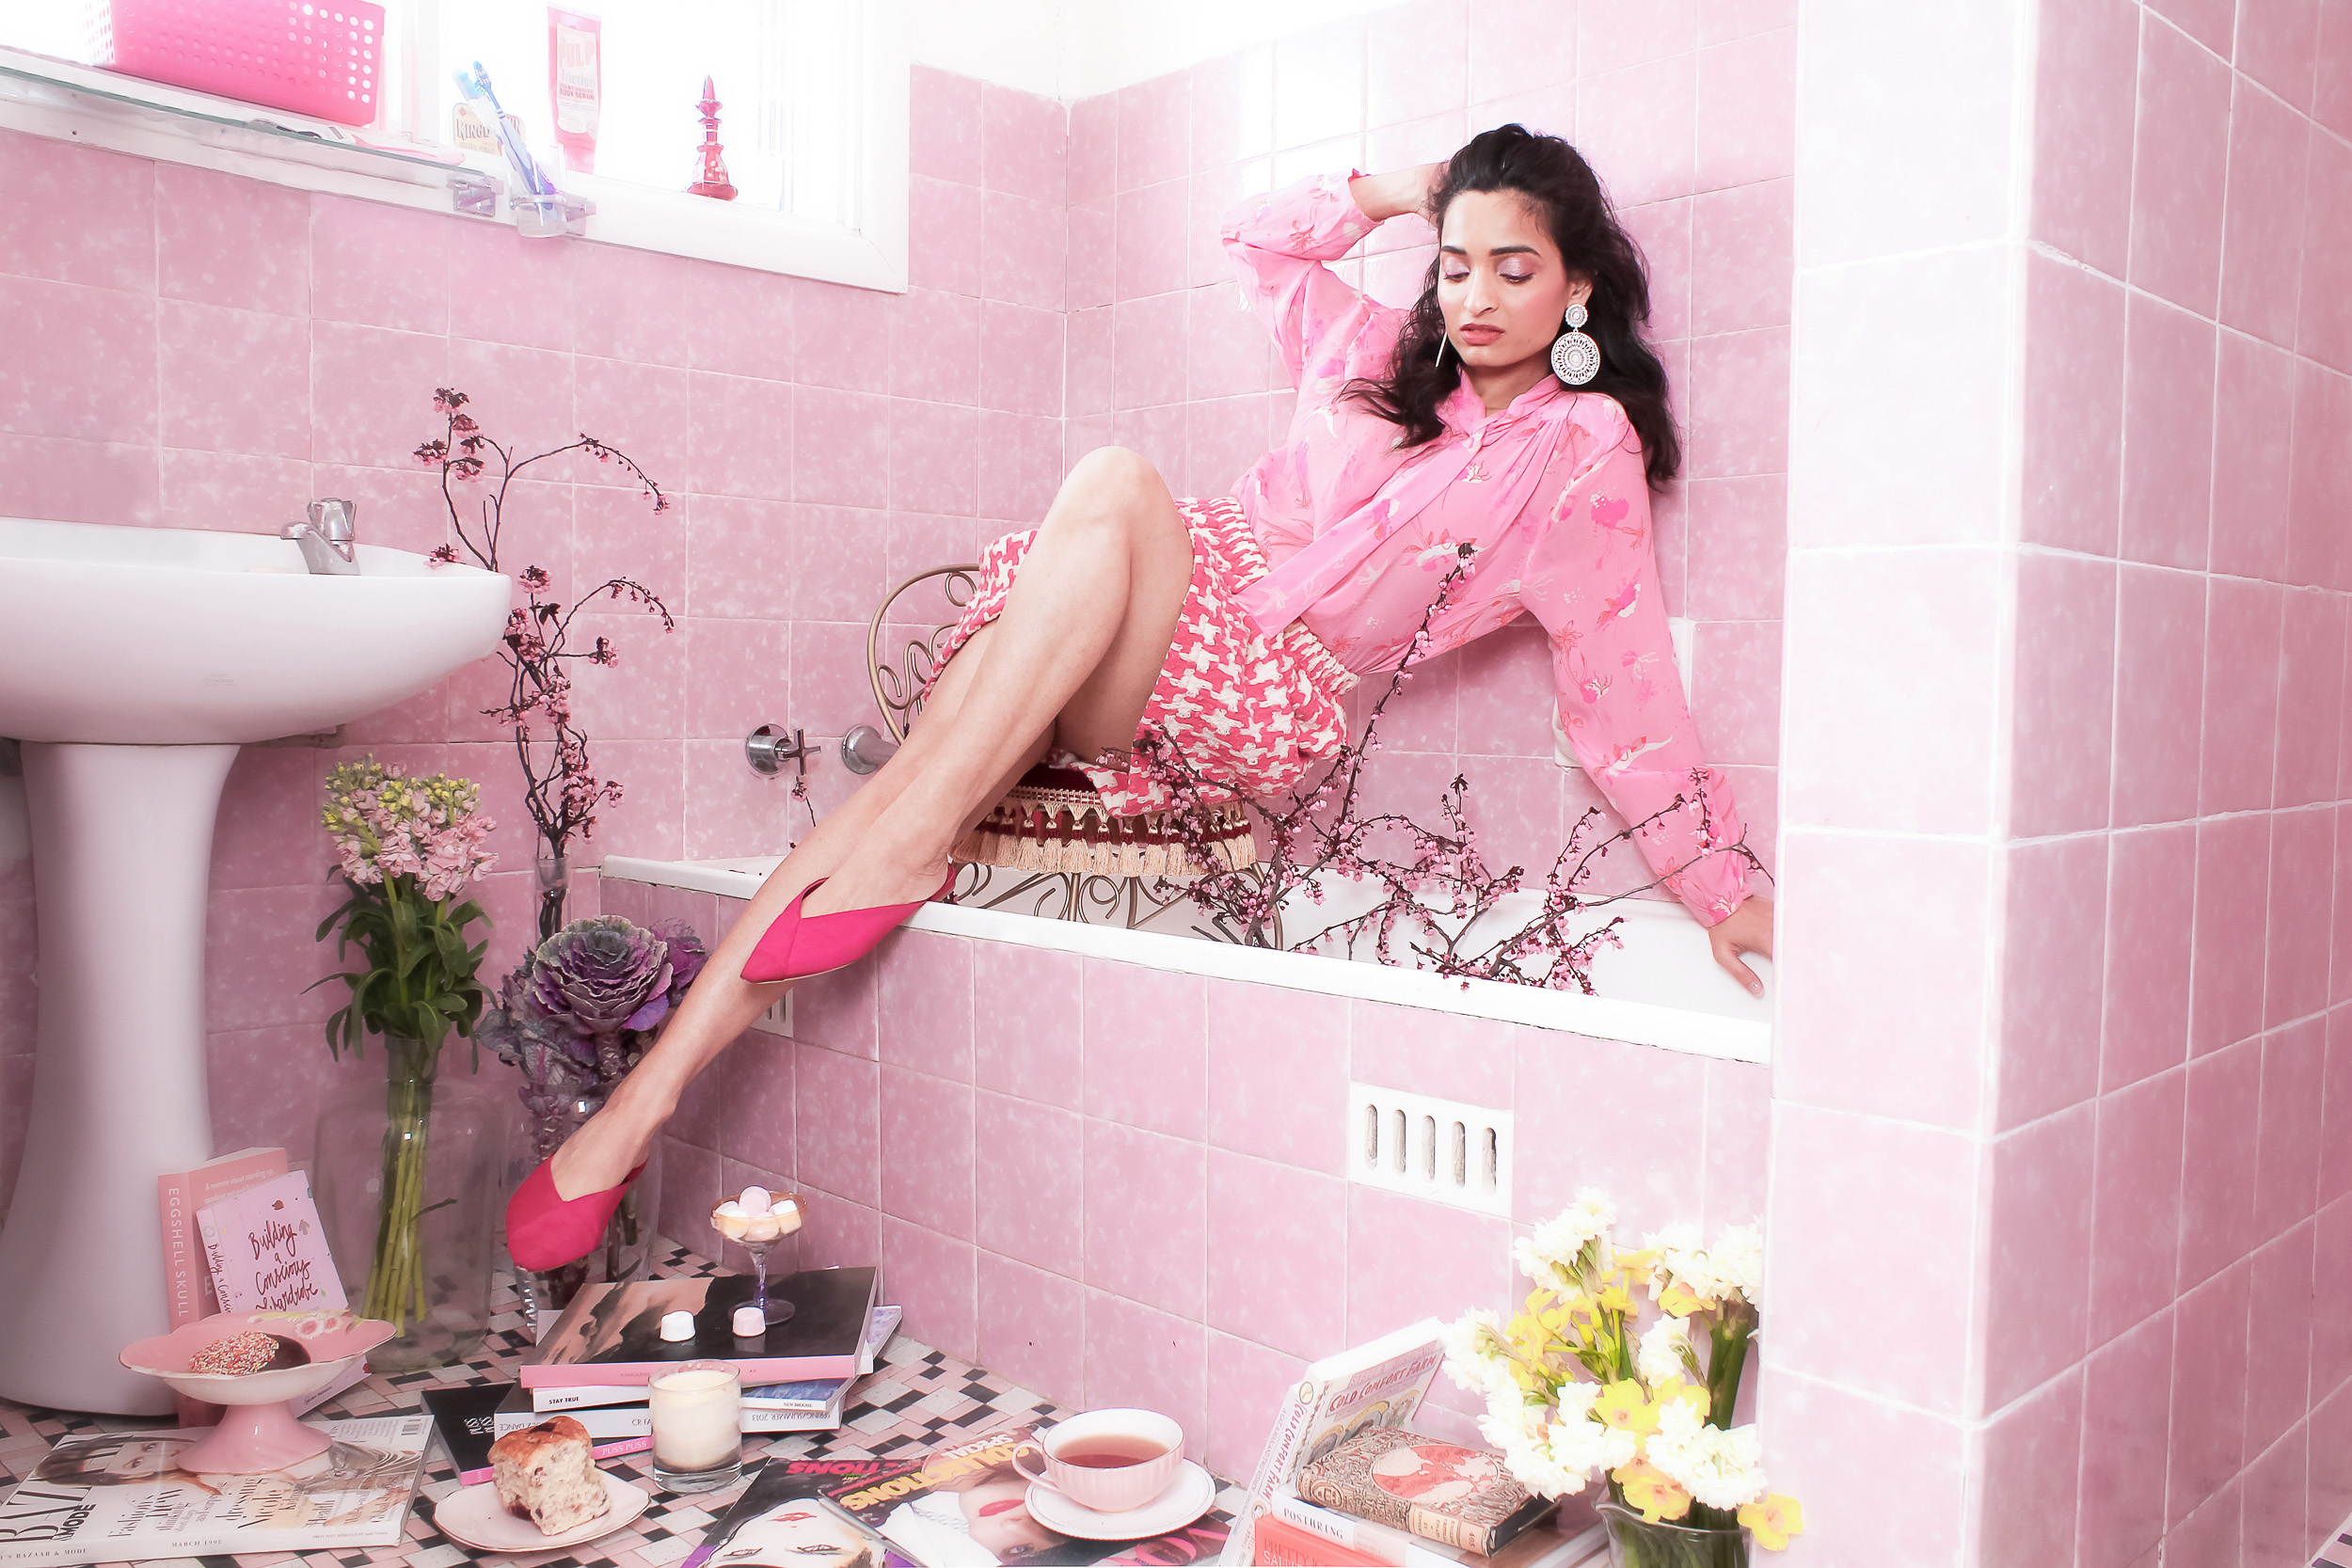 Creative editorial in a pink bathroom with the girl sitting in bathtub wearing pink outfit